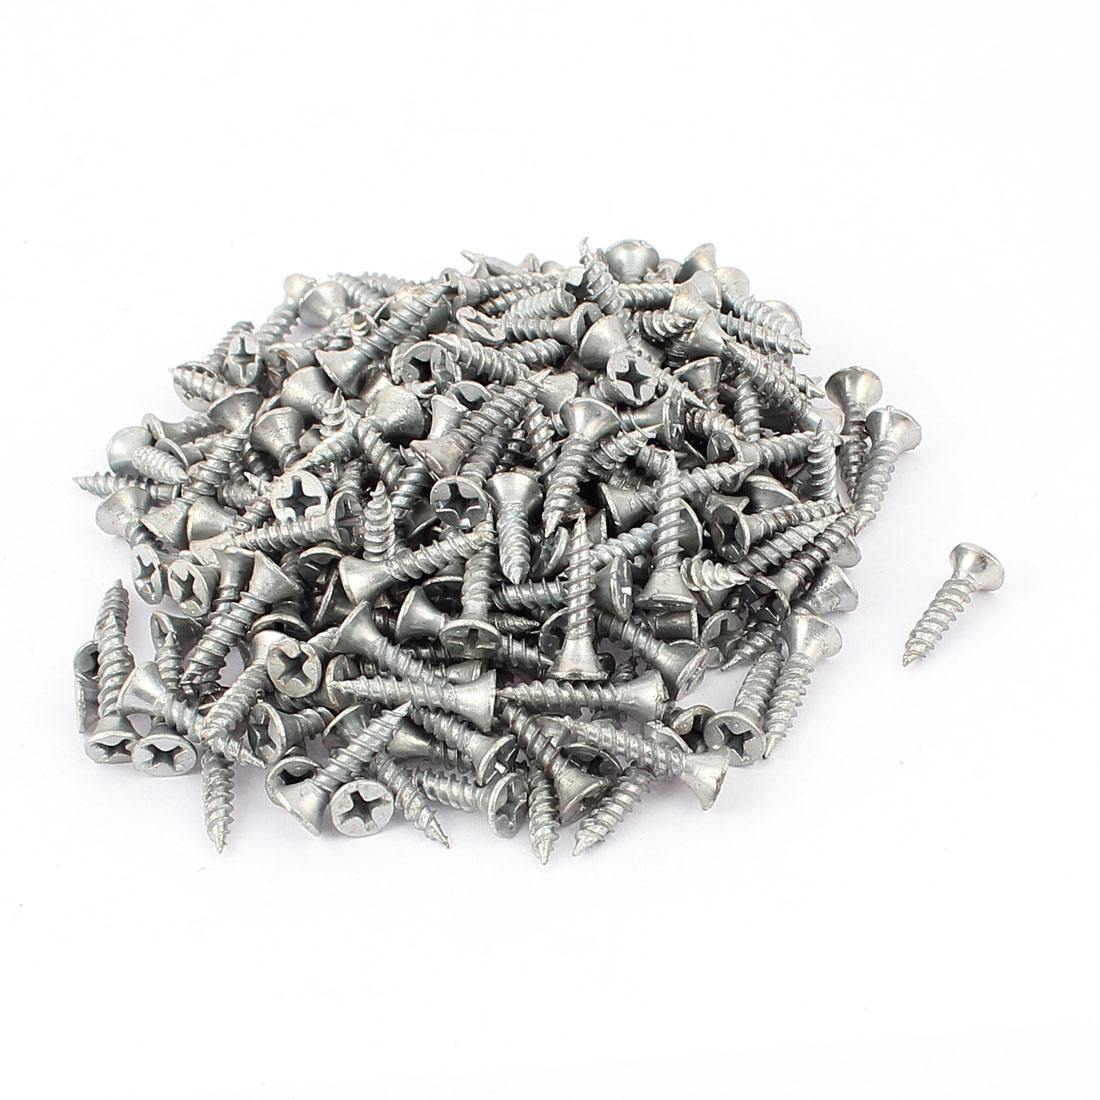 230 Pcs 1mm Pitch Phillips Pan Head Self Tapping Drilling Screws Bolts M3.5x13mm